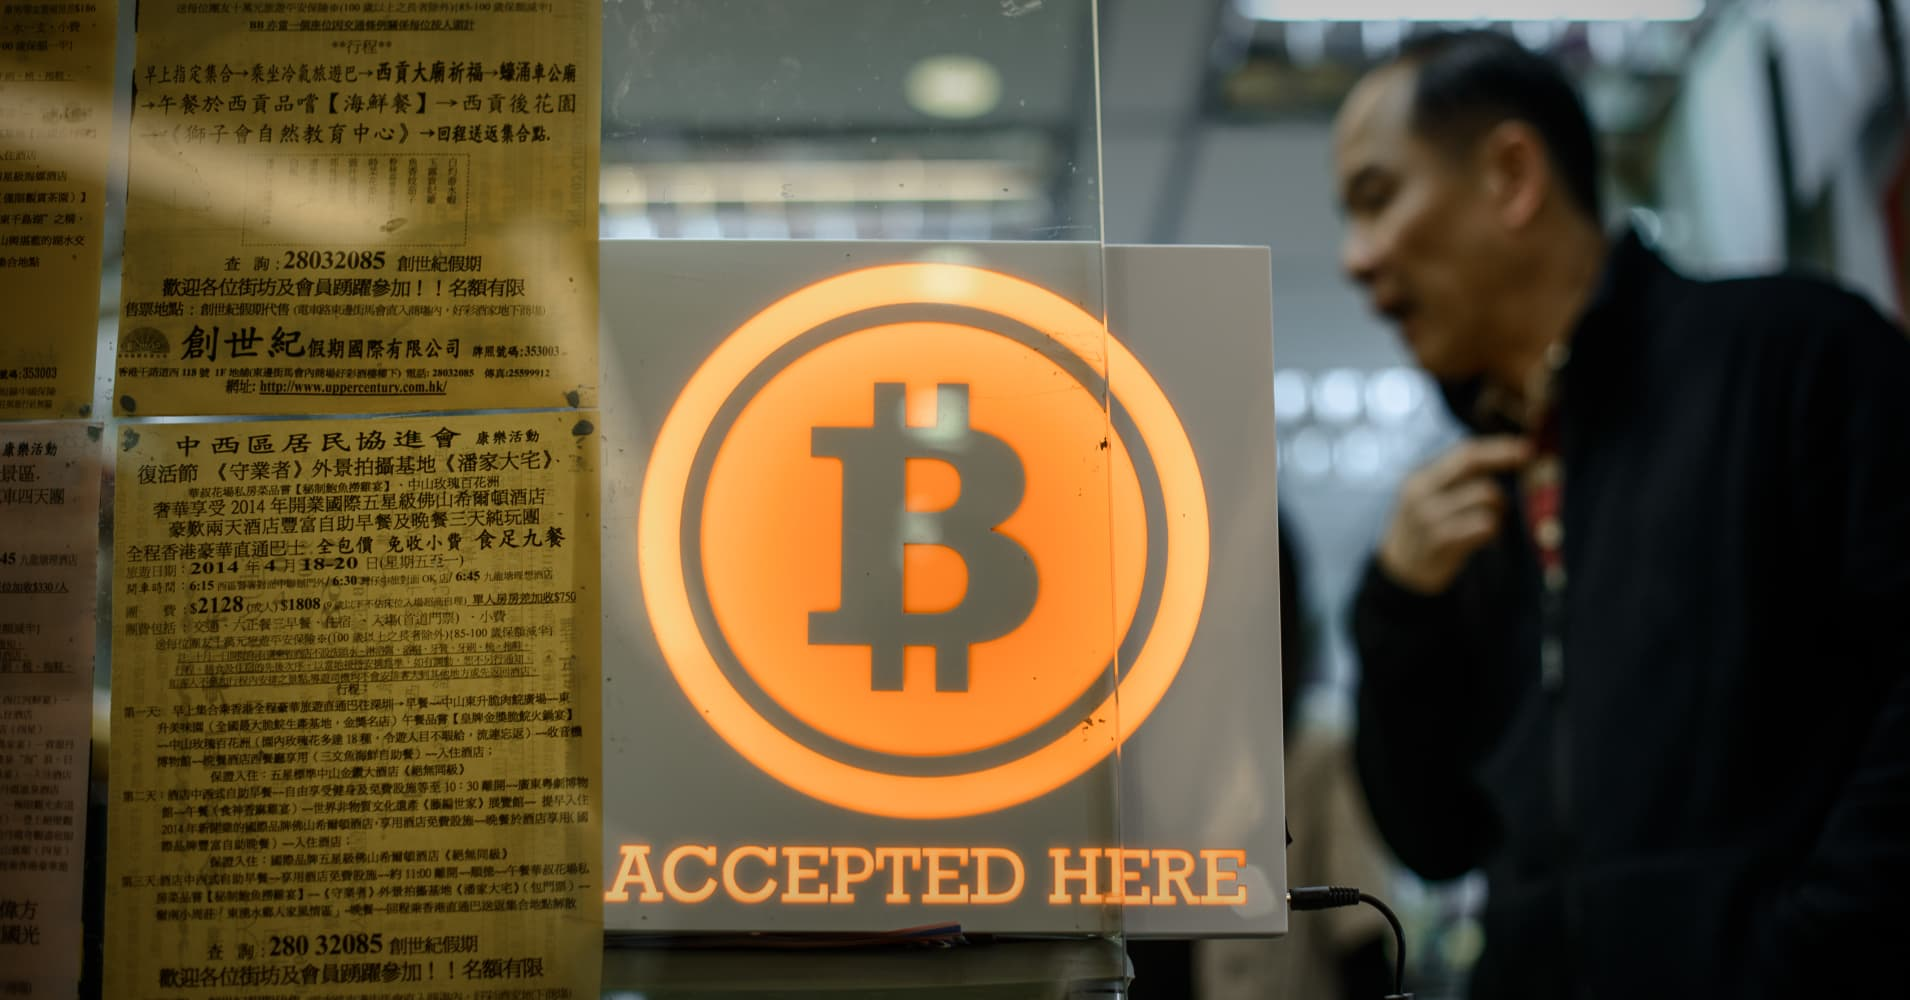 Bitcoin falls 10% as China plans to investigate exchanges